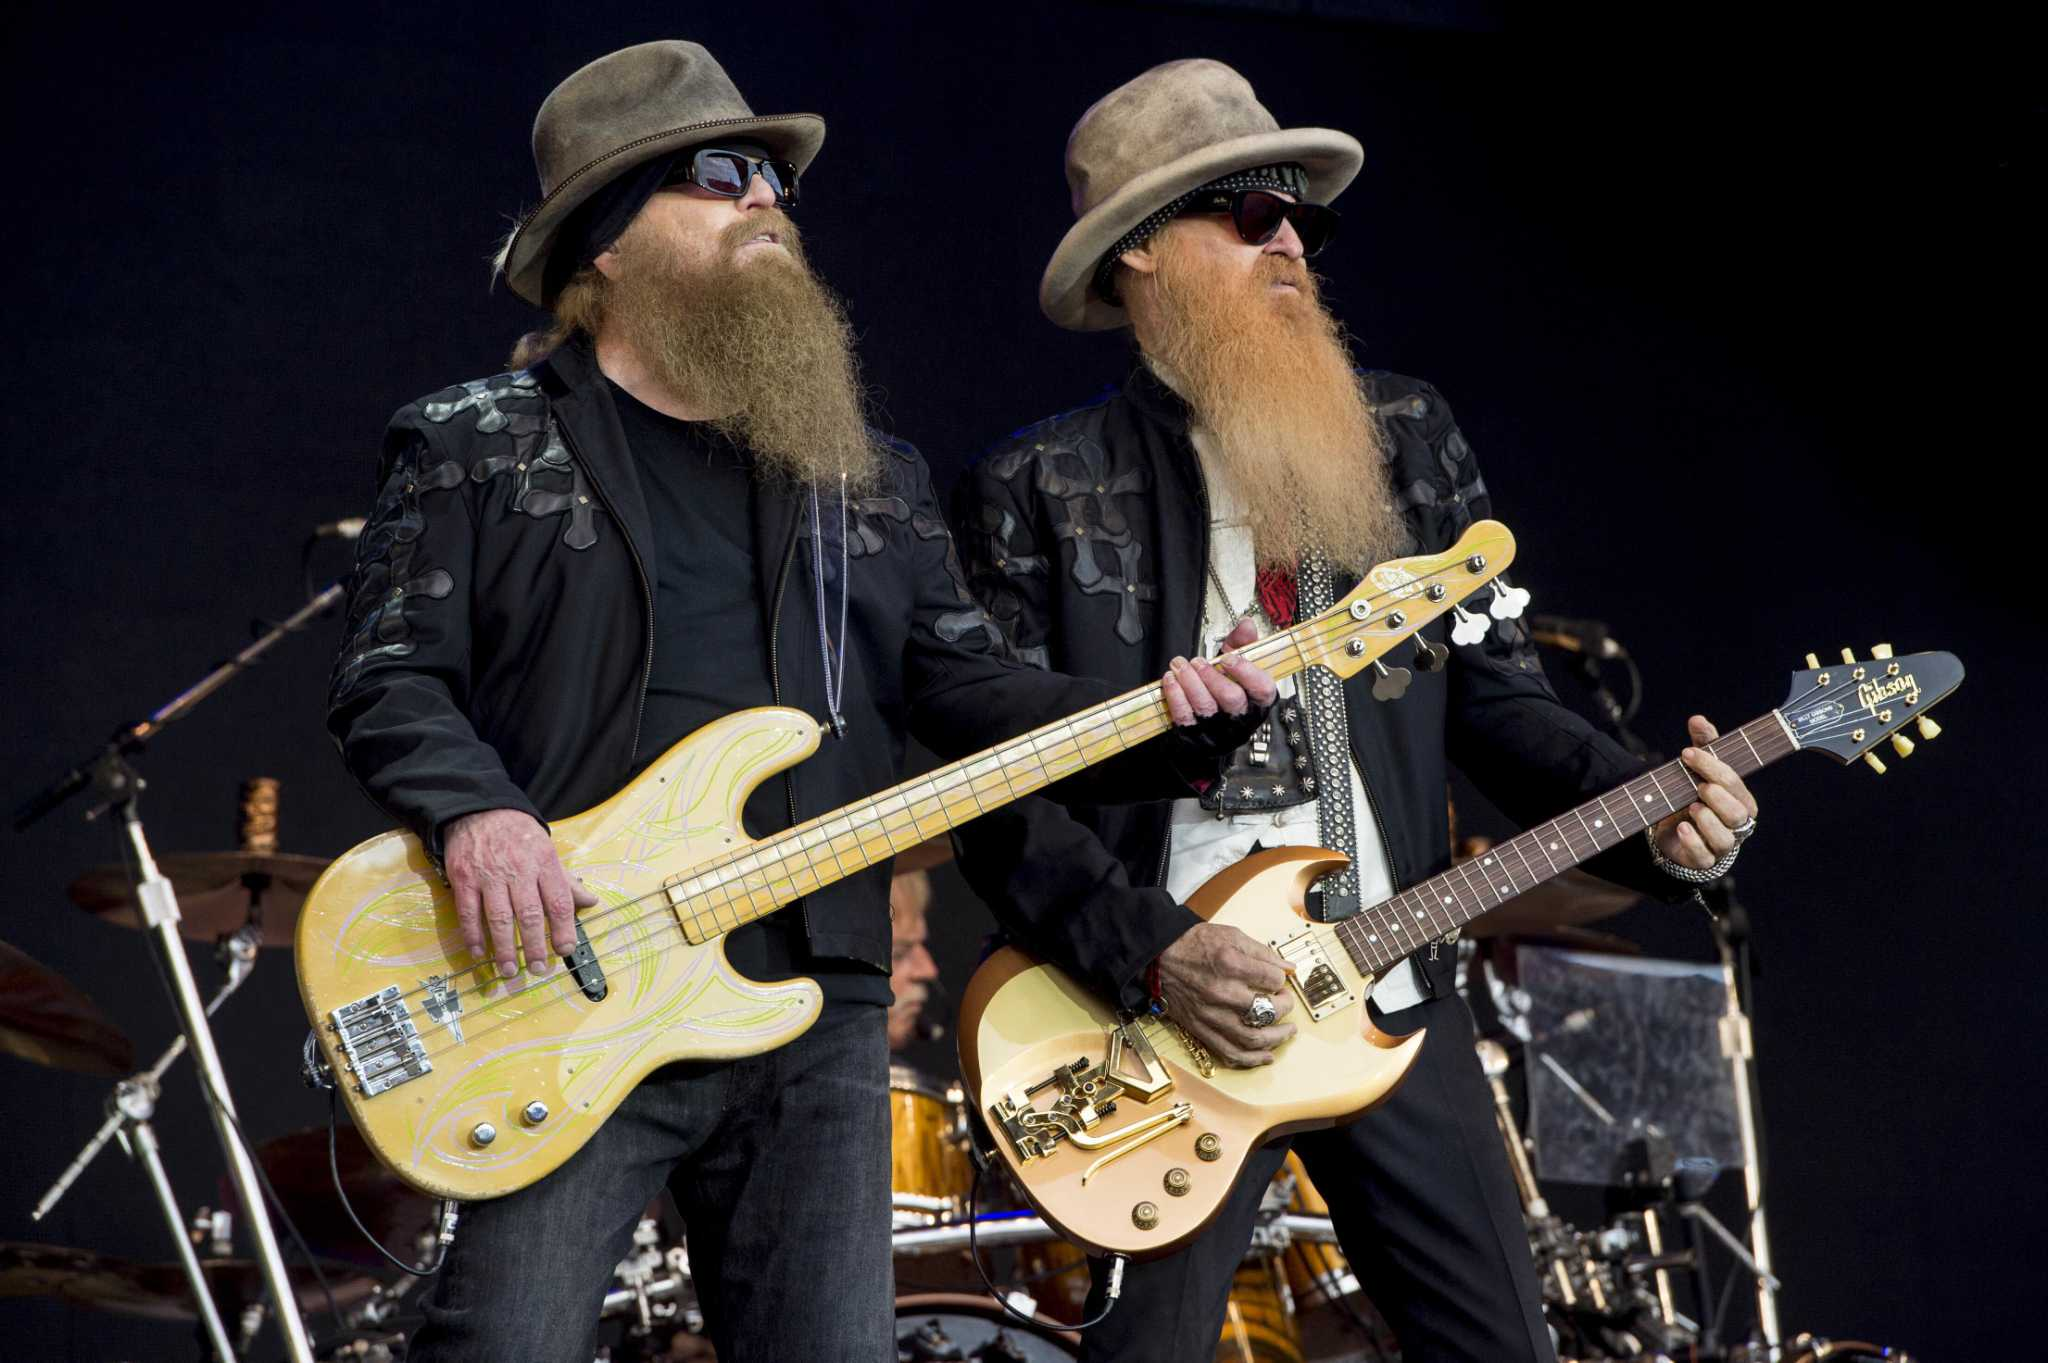 ZZ Top's first album turns 50: the making of an iconic Texas band